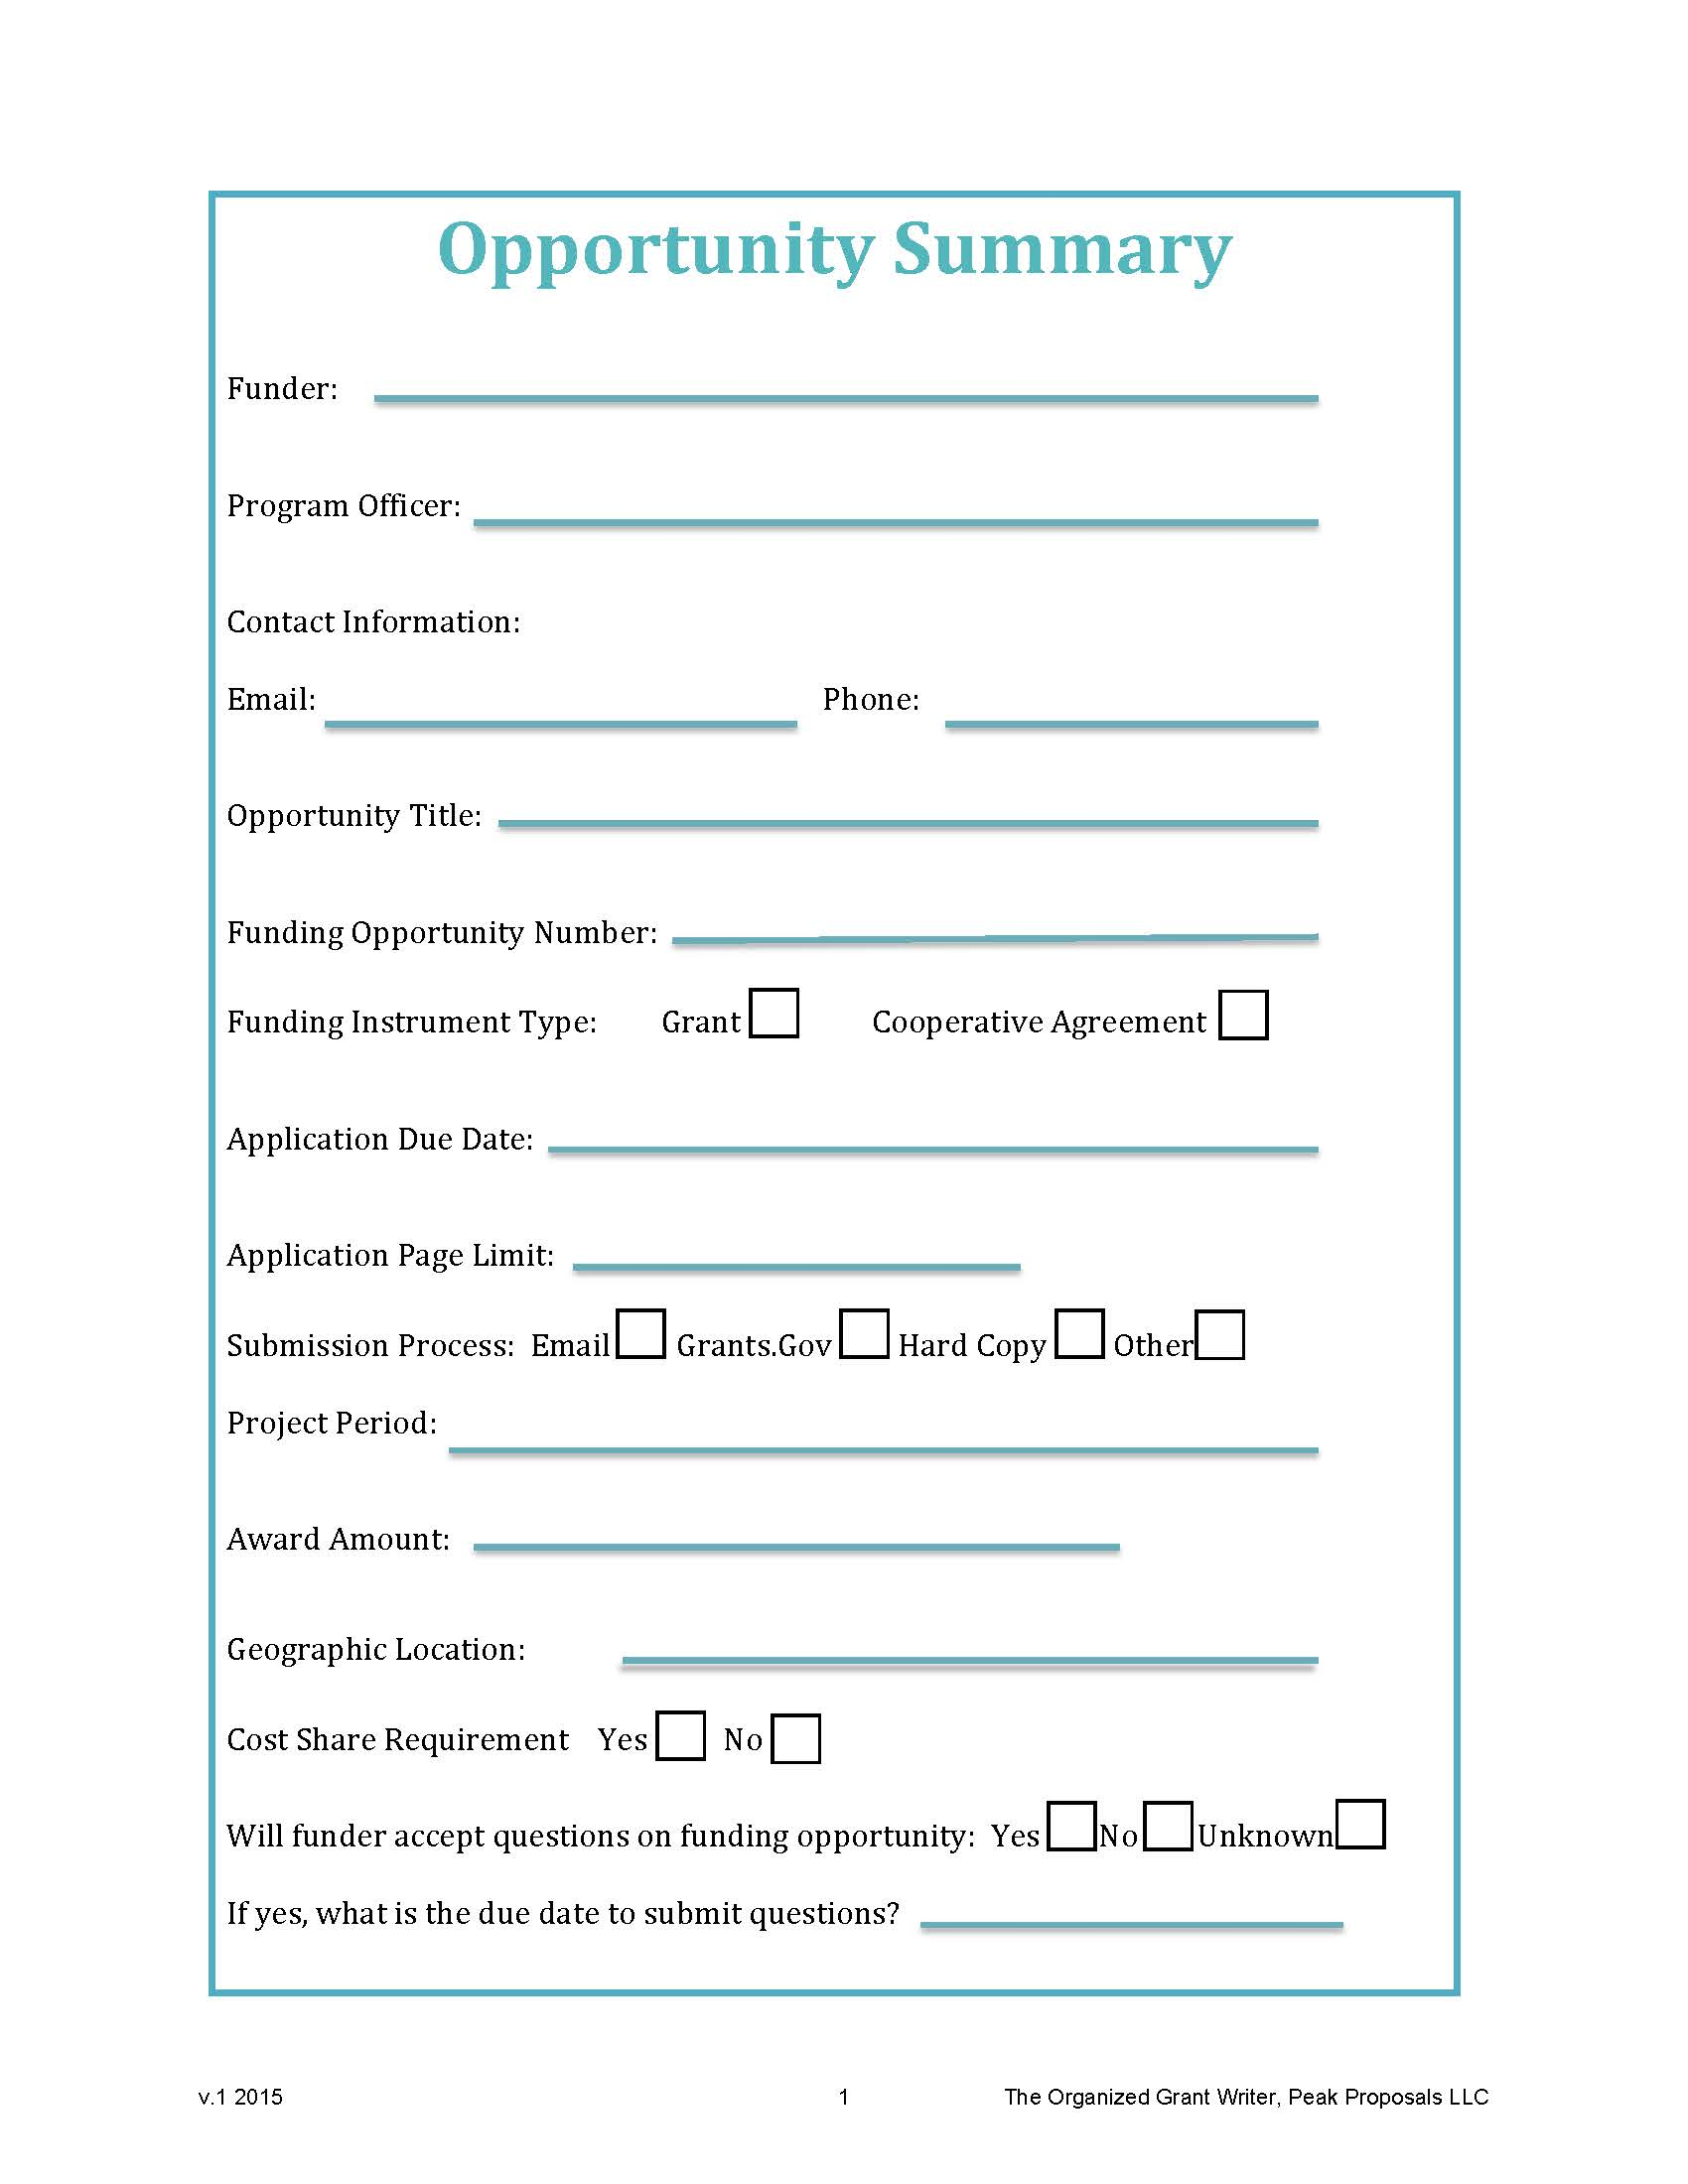 Free Download: Opportunity Summary     Worksheet